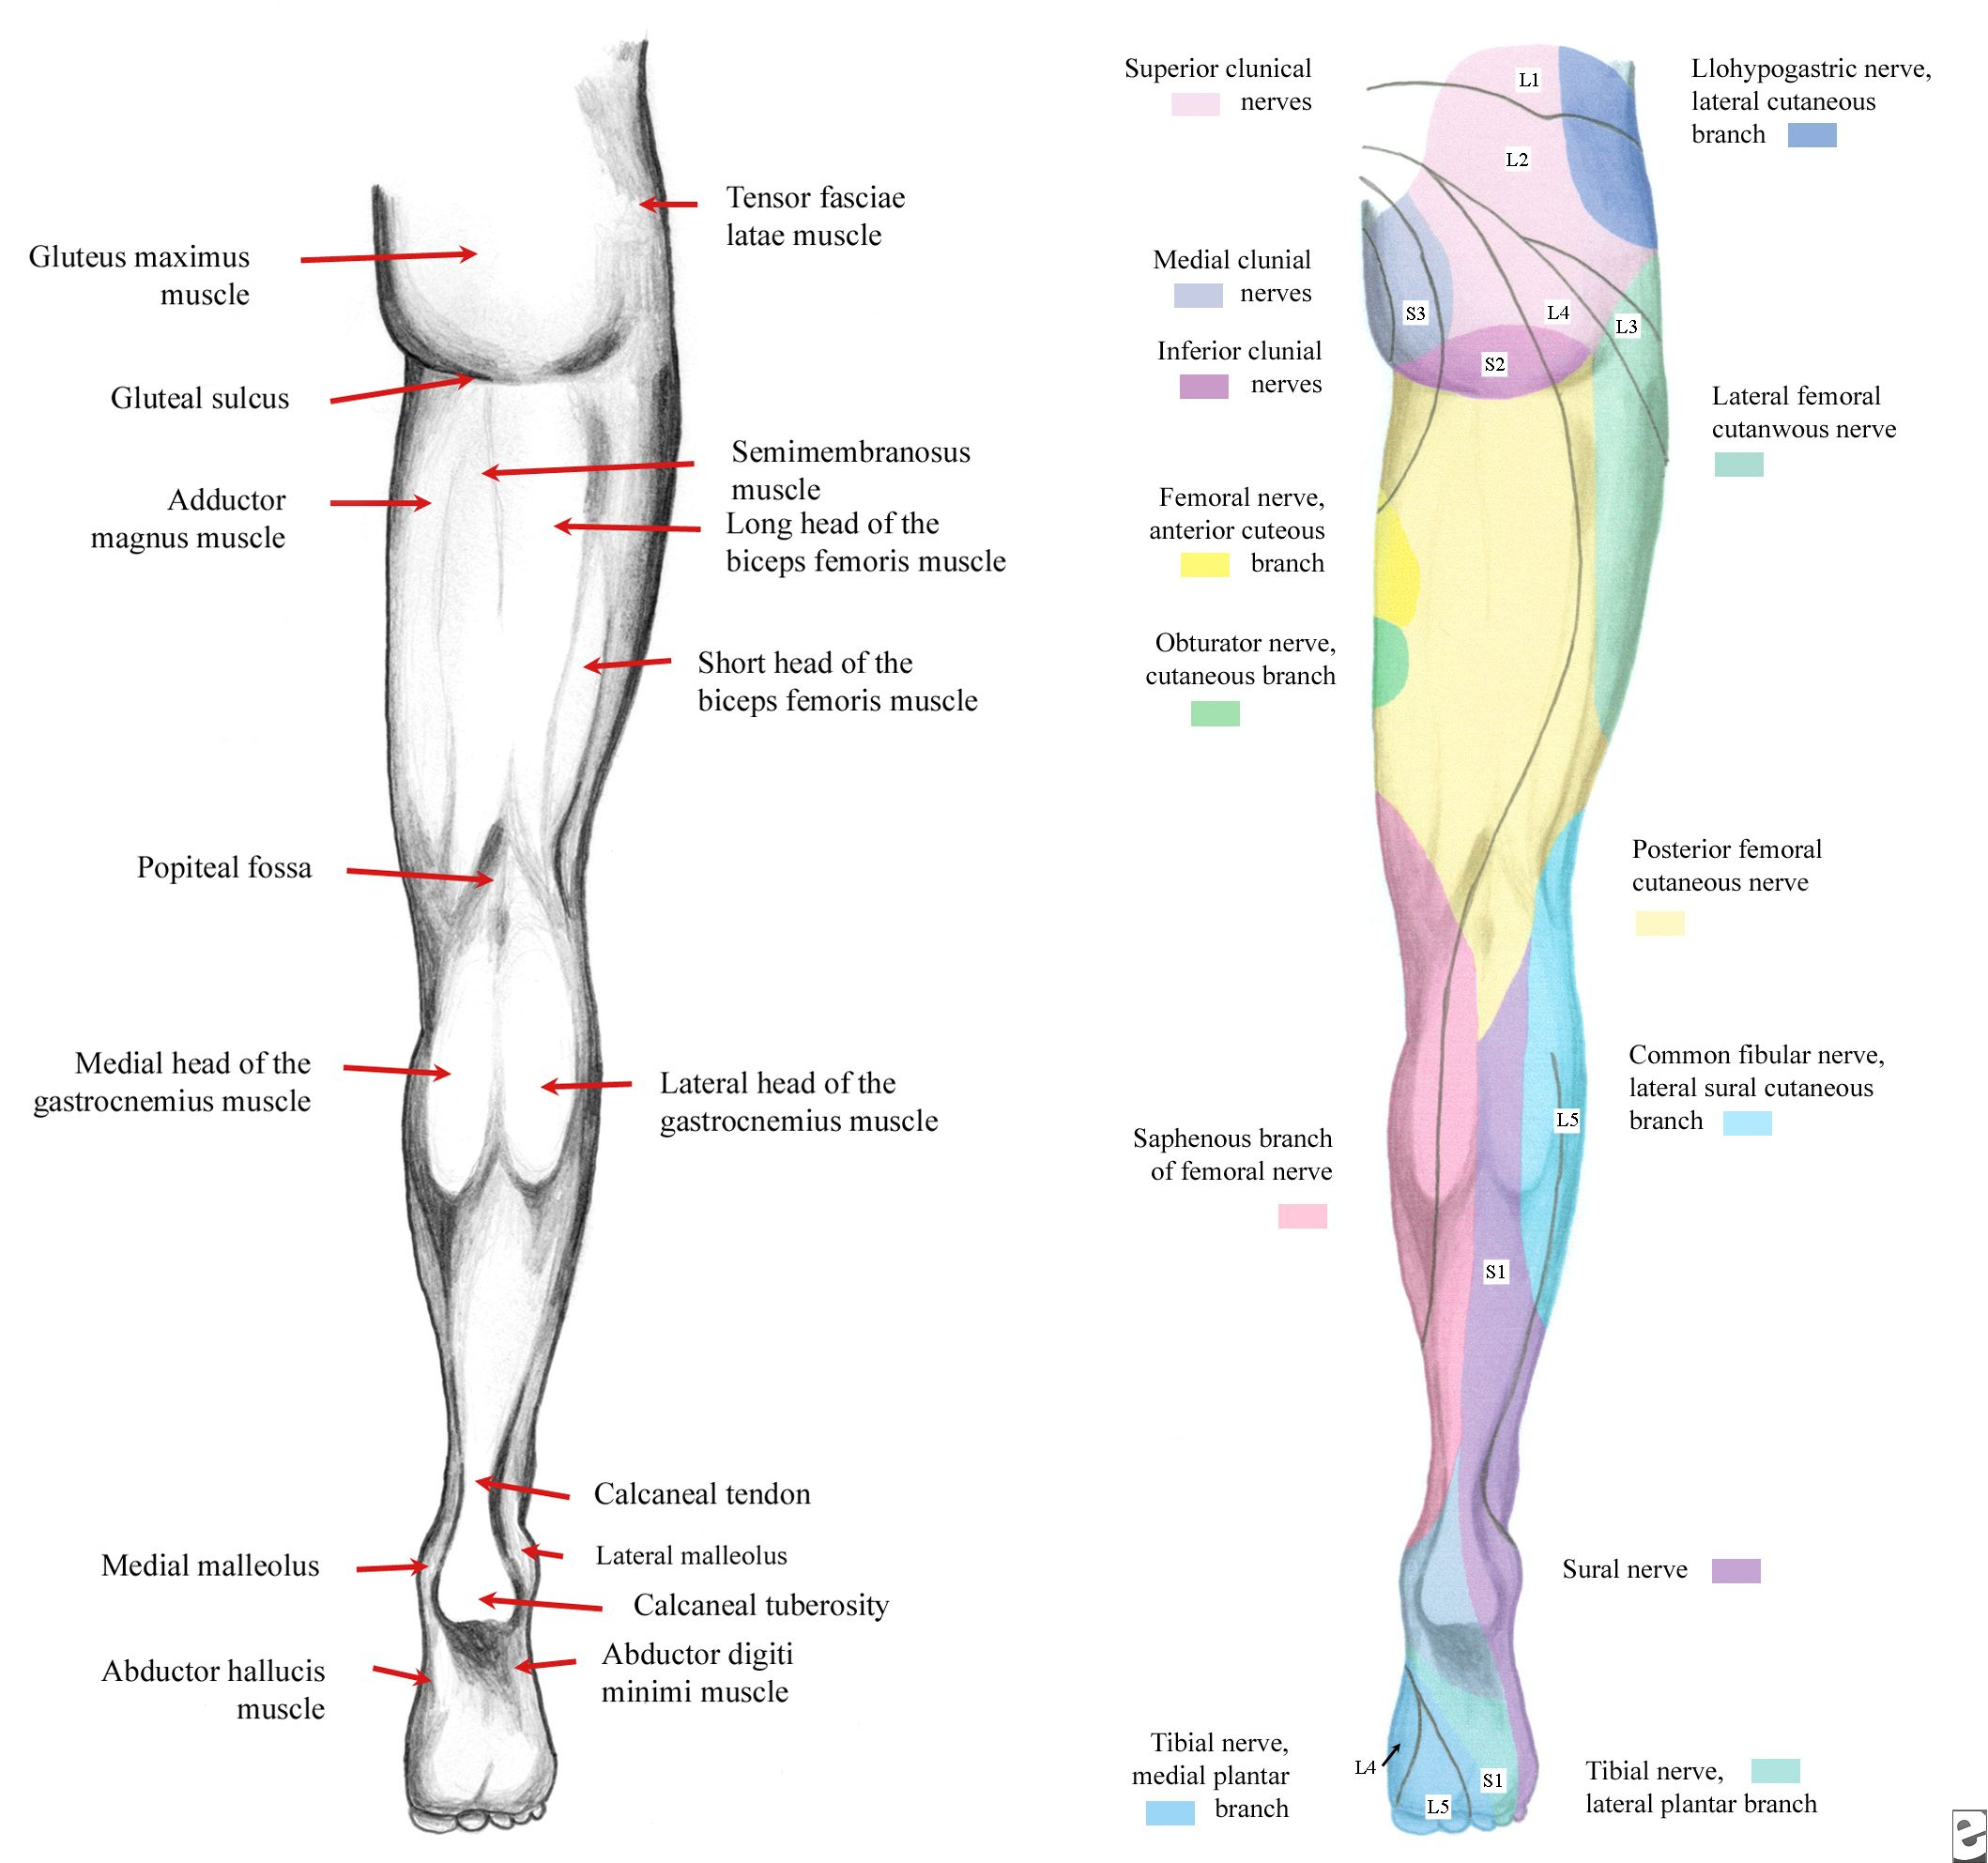 cauda equina and conus medullaris syndromes clinical presentation, Muscles